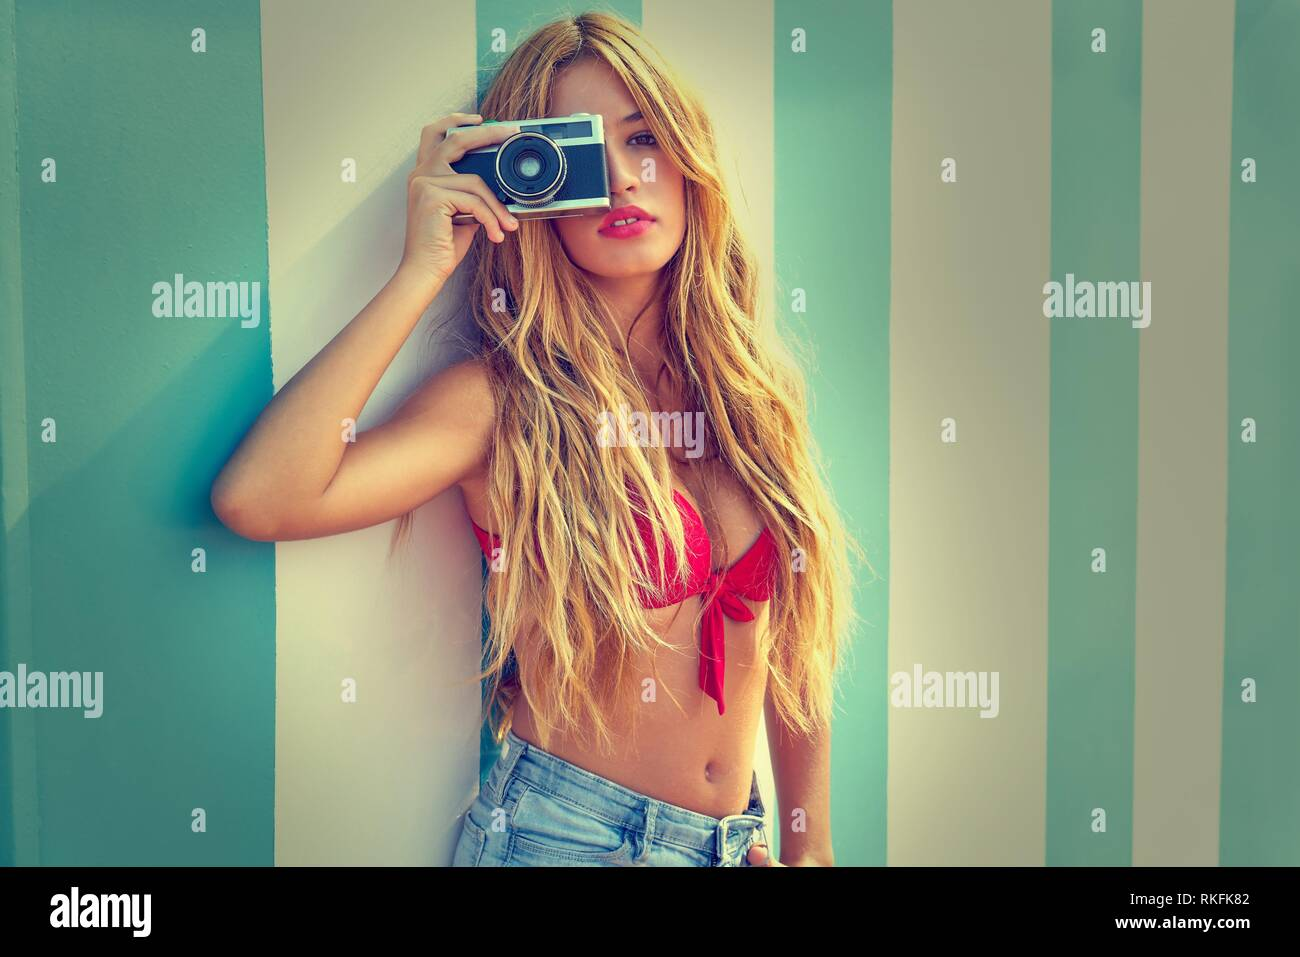 Blond teen summer girl with vintage photo camera in blue stripes wall background filtered image. - Stock Image